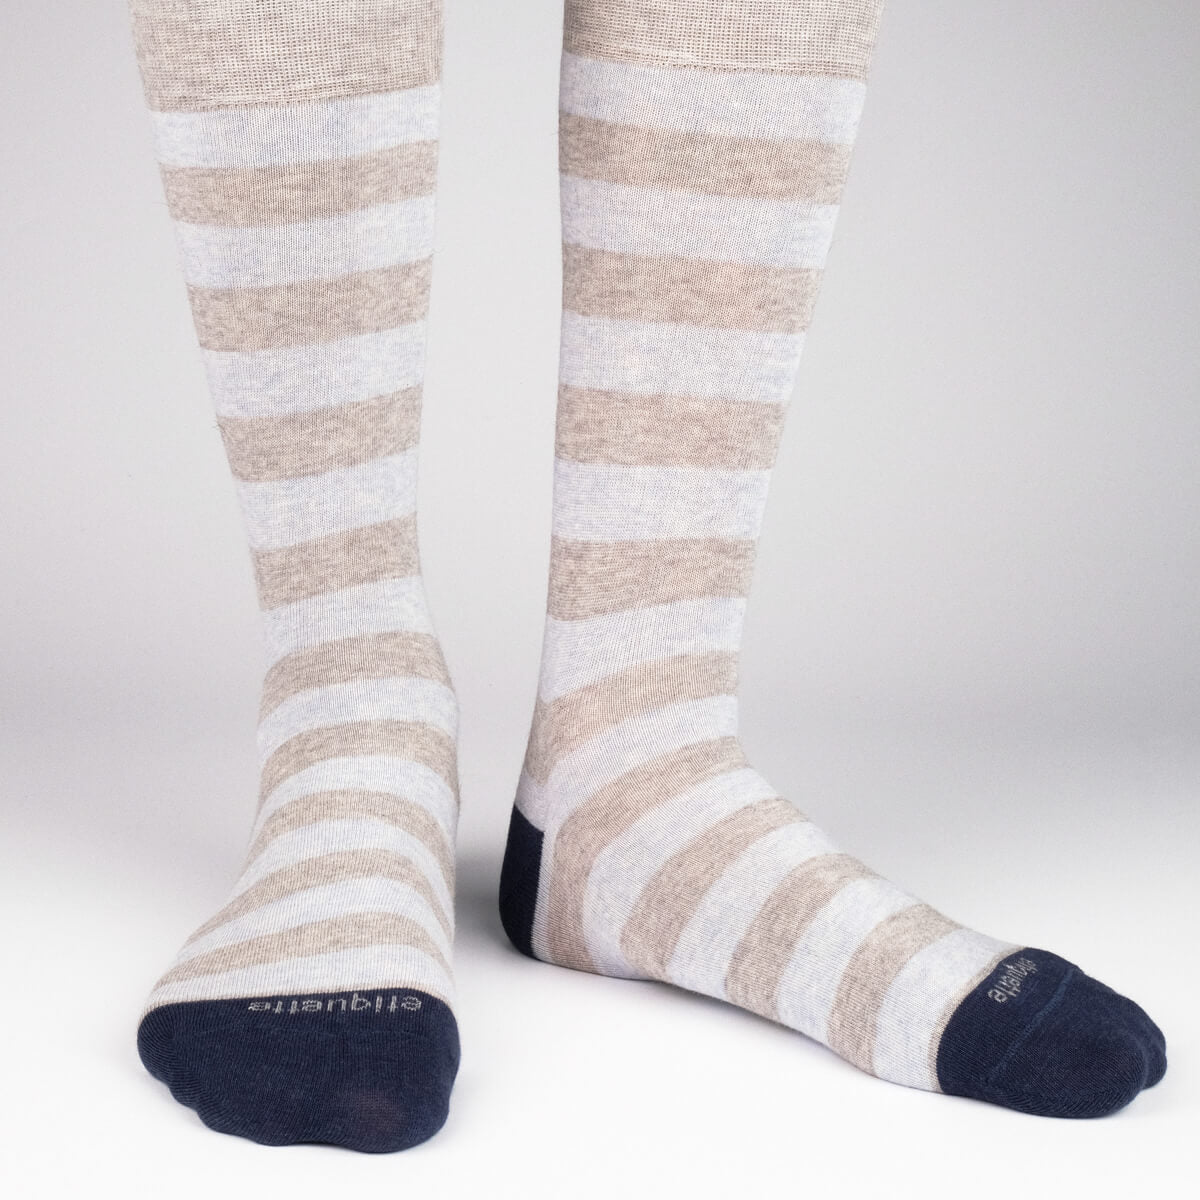 Mens Socks - Rugby Stripes Men's Socks - Grey⎪Etiquette Clothiers